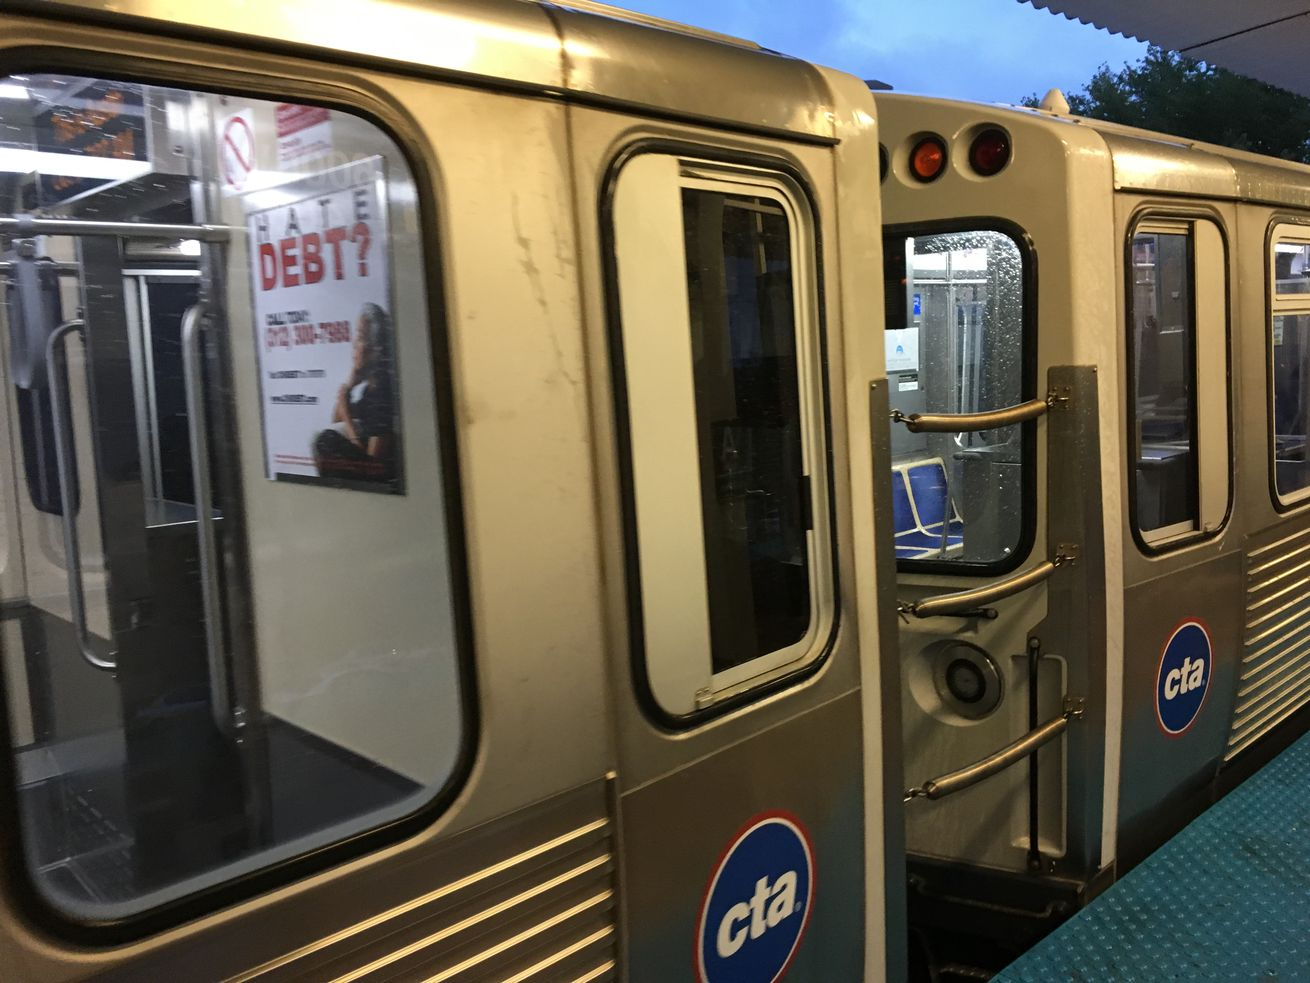 A person was fatally struck by a train Nov. 17, 2020, at the Harold Washington Library-State/Van Buren stop.